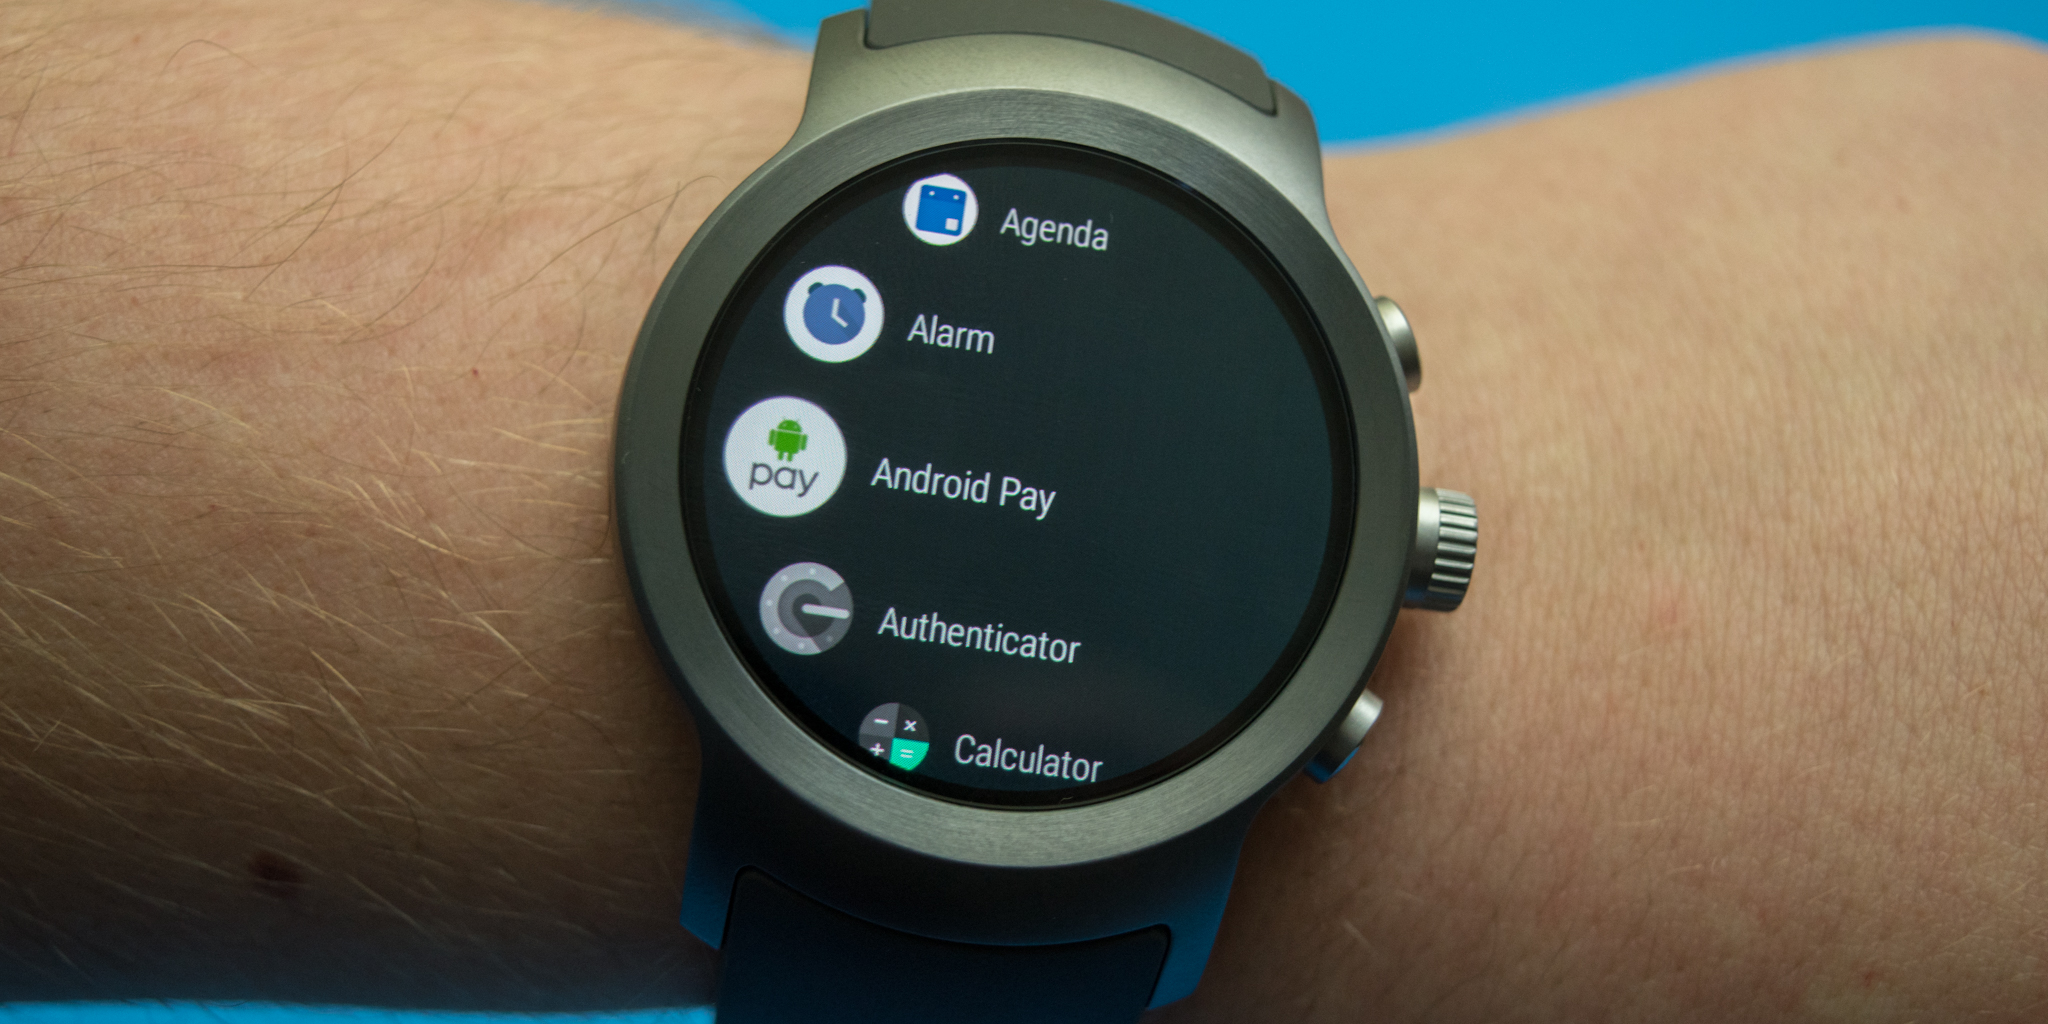 Upcoming Android Wear 2.9 update adds new notification indicator to all watch faces